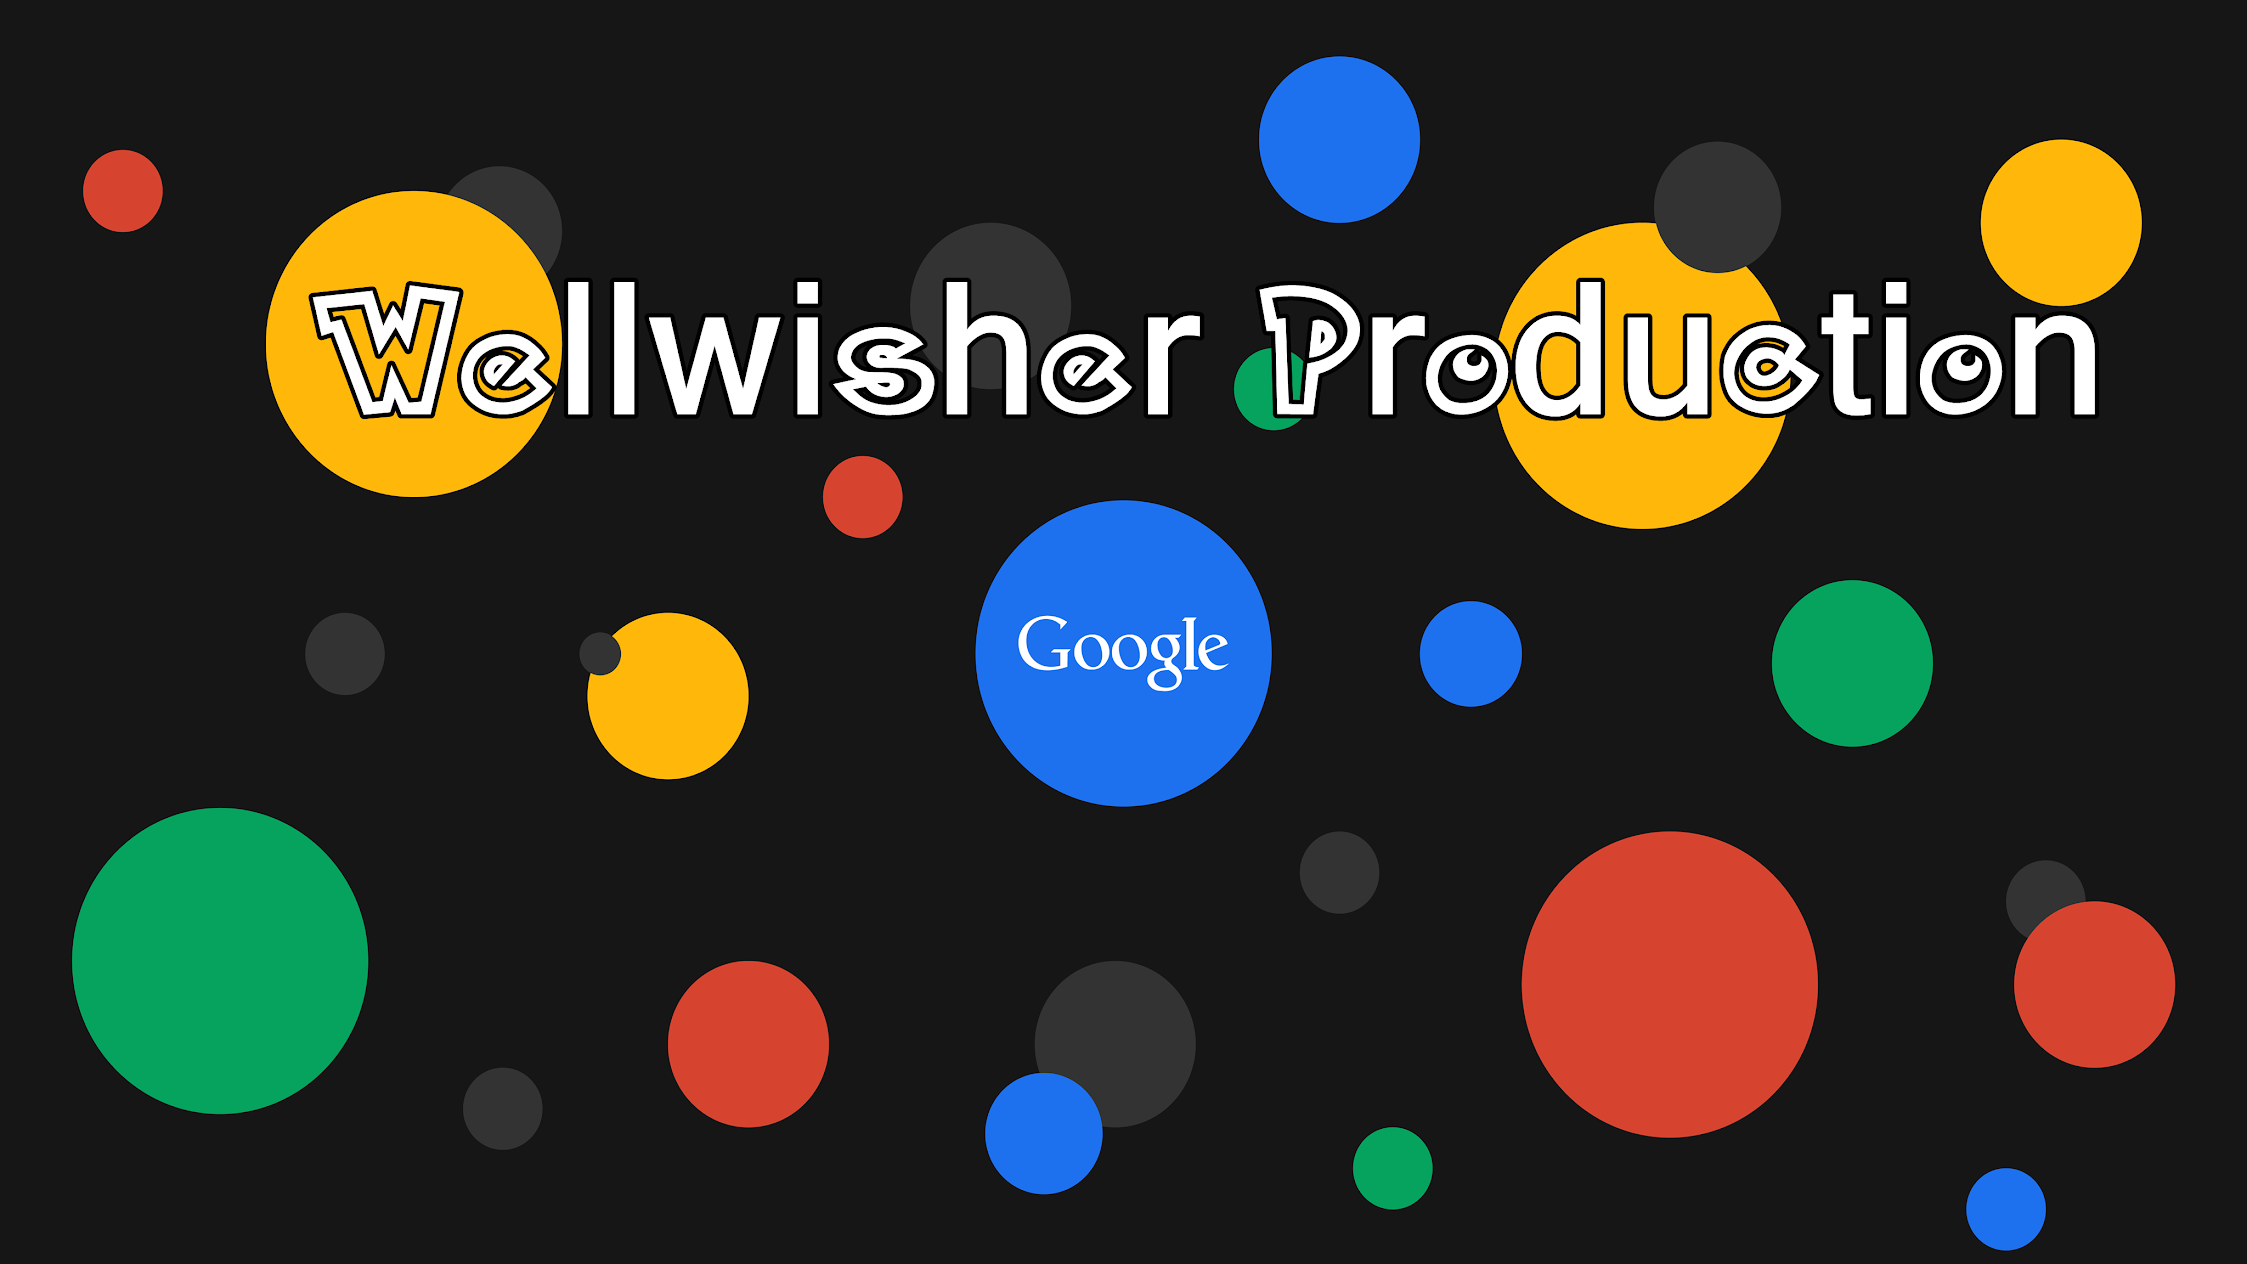 Wellwisher Production